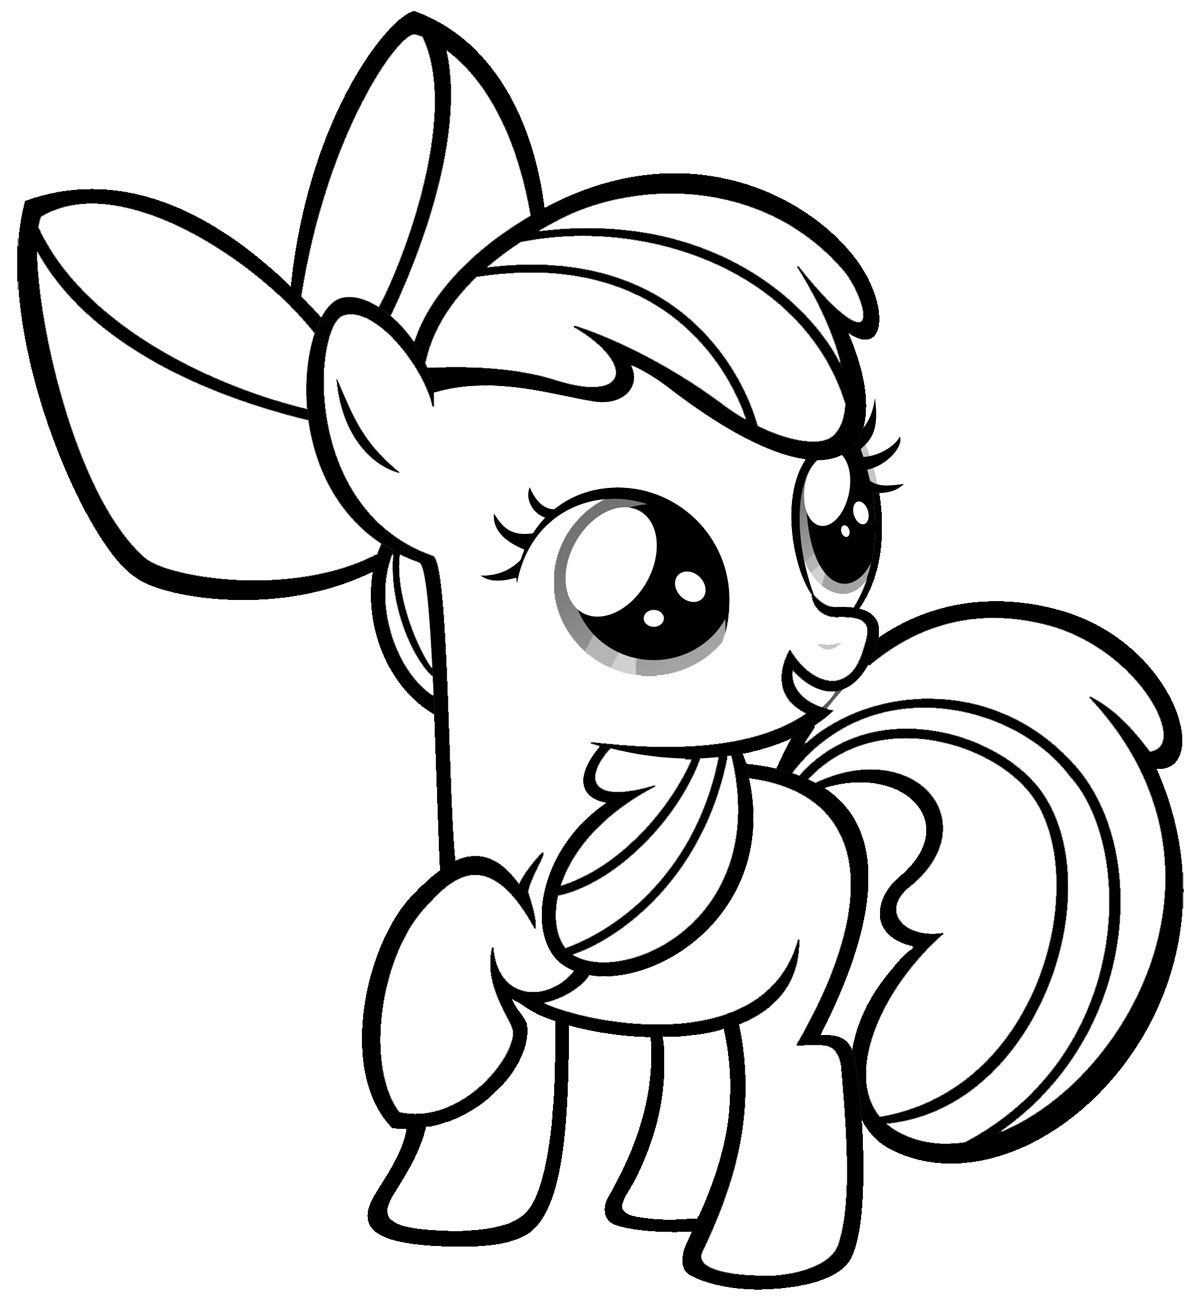 coloring pages of my little pony friendship is magic get this kids39 printable my little pony friendship is friendship pony little my pages coloring magic of is